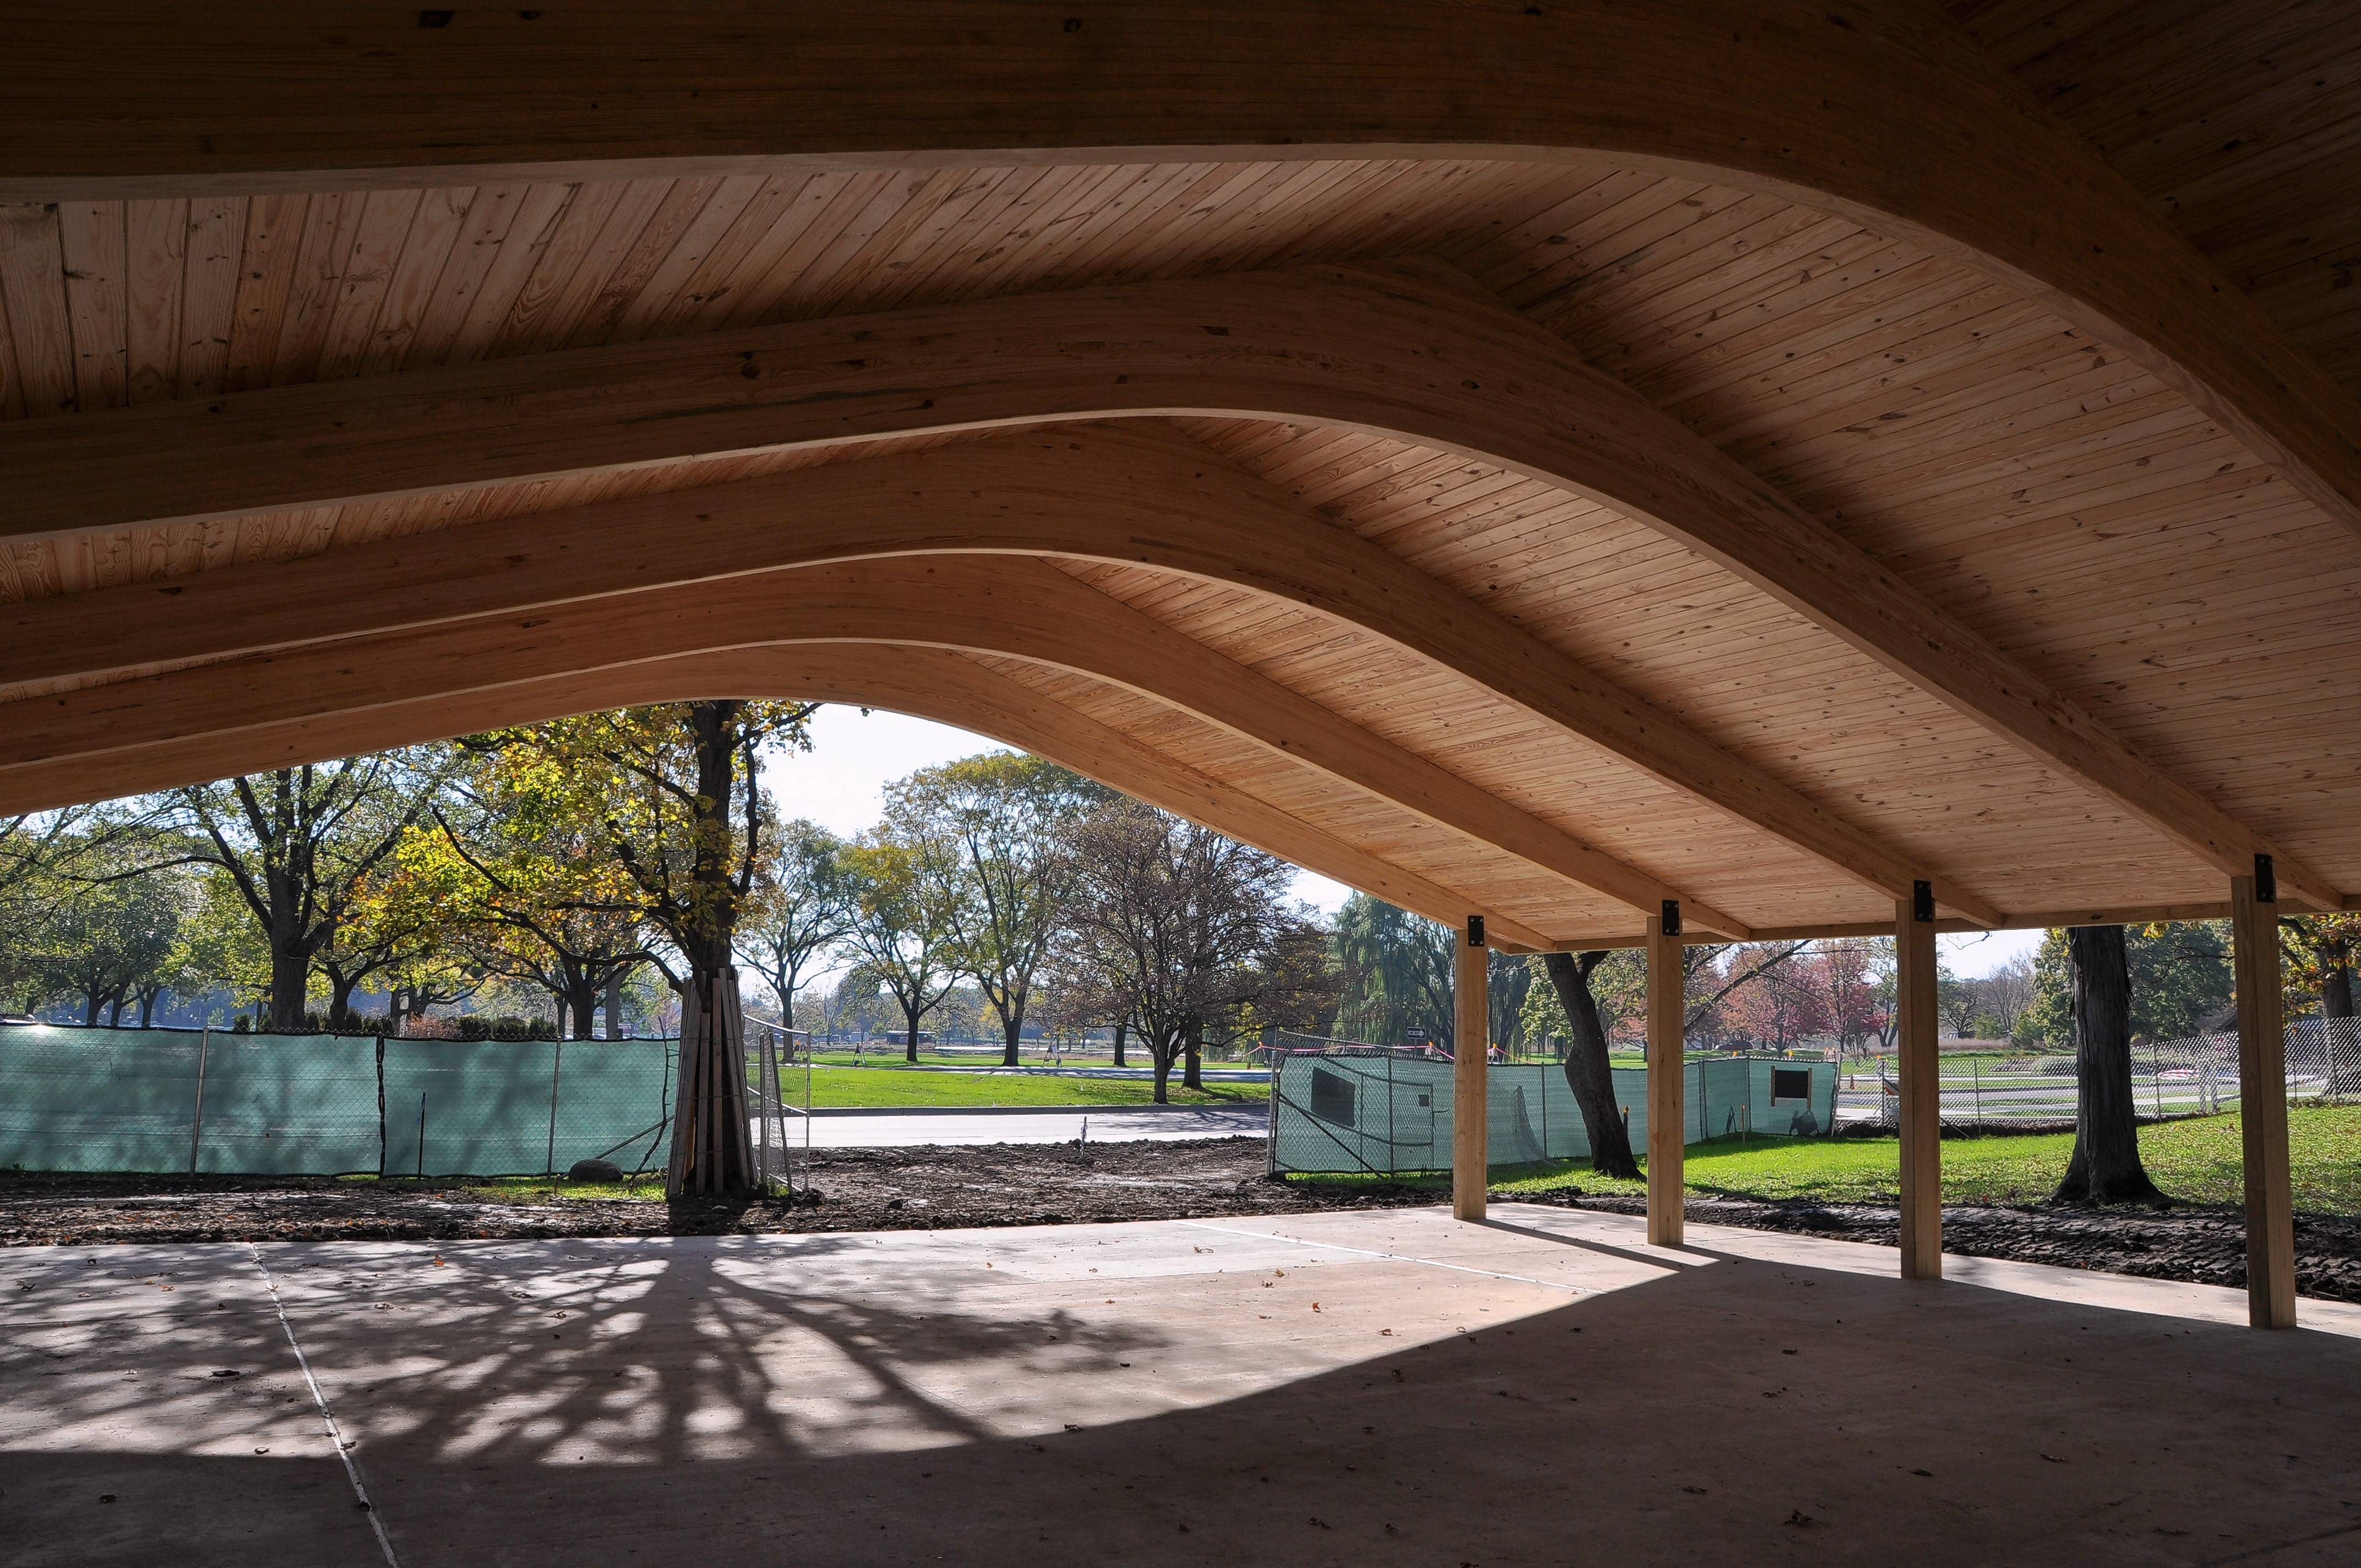 The pavilion offers shade for visitors bringing a picnic to Cantigny Park in Wheaton.